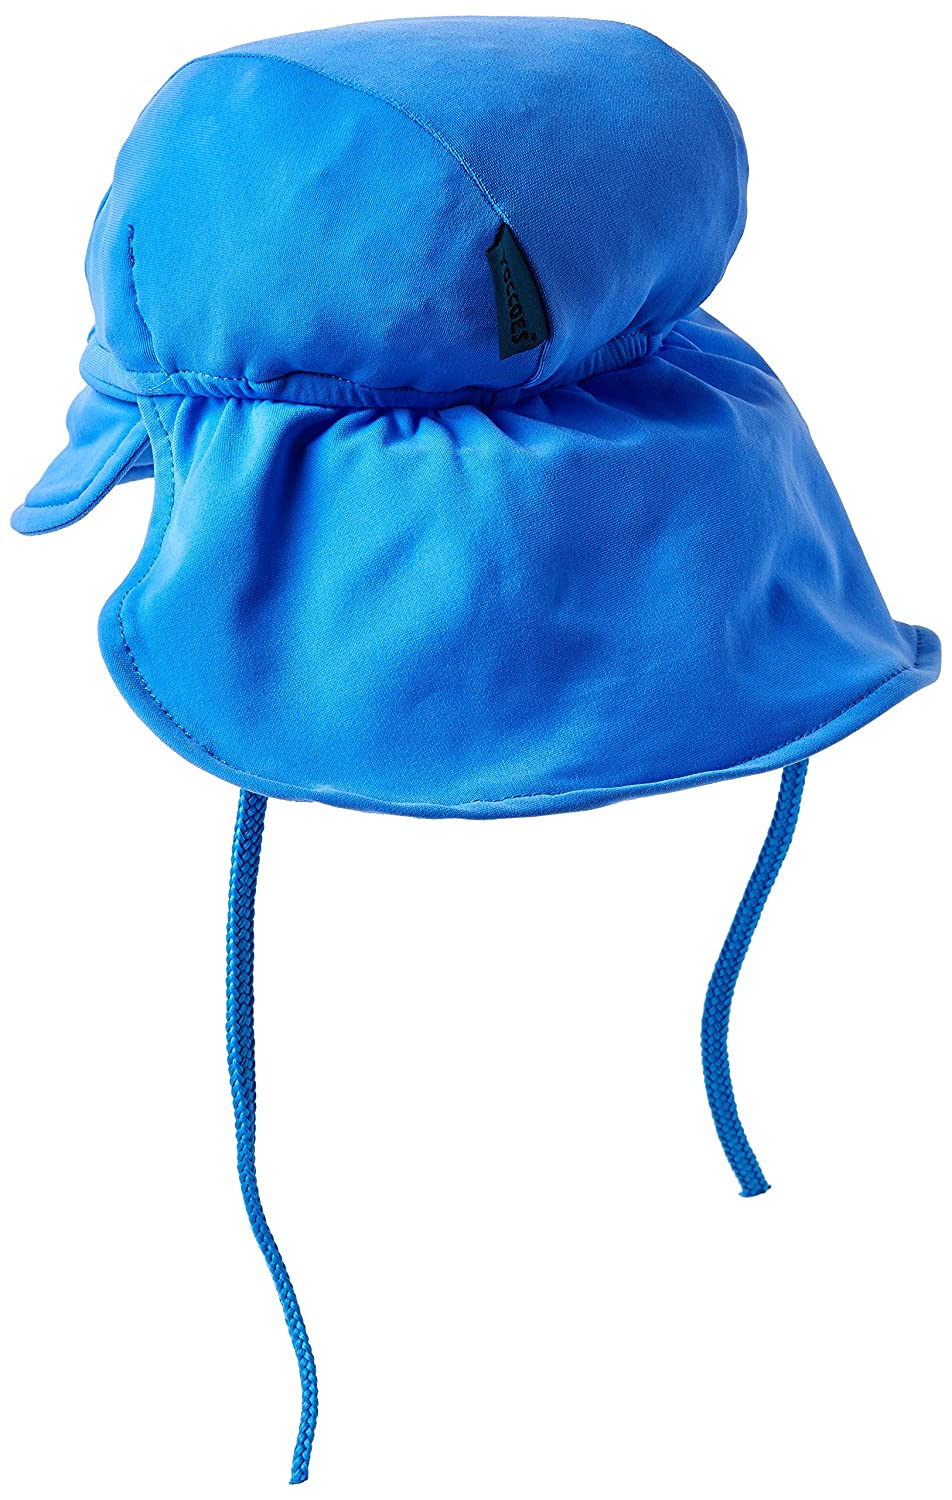 Yoccoes Designs Baby and Toddler UV Sun Hat Blue  (S  (Baby 9 - 18  months ) ) Christmas Decoration 7a84a314c7d